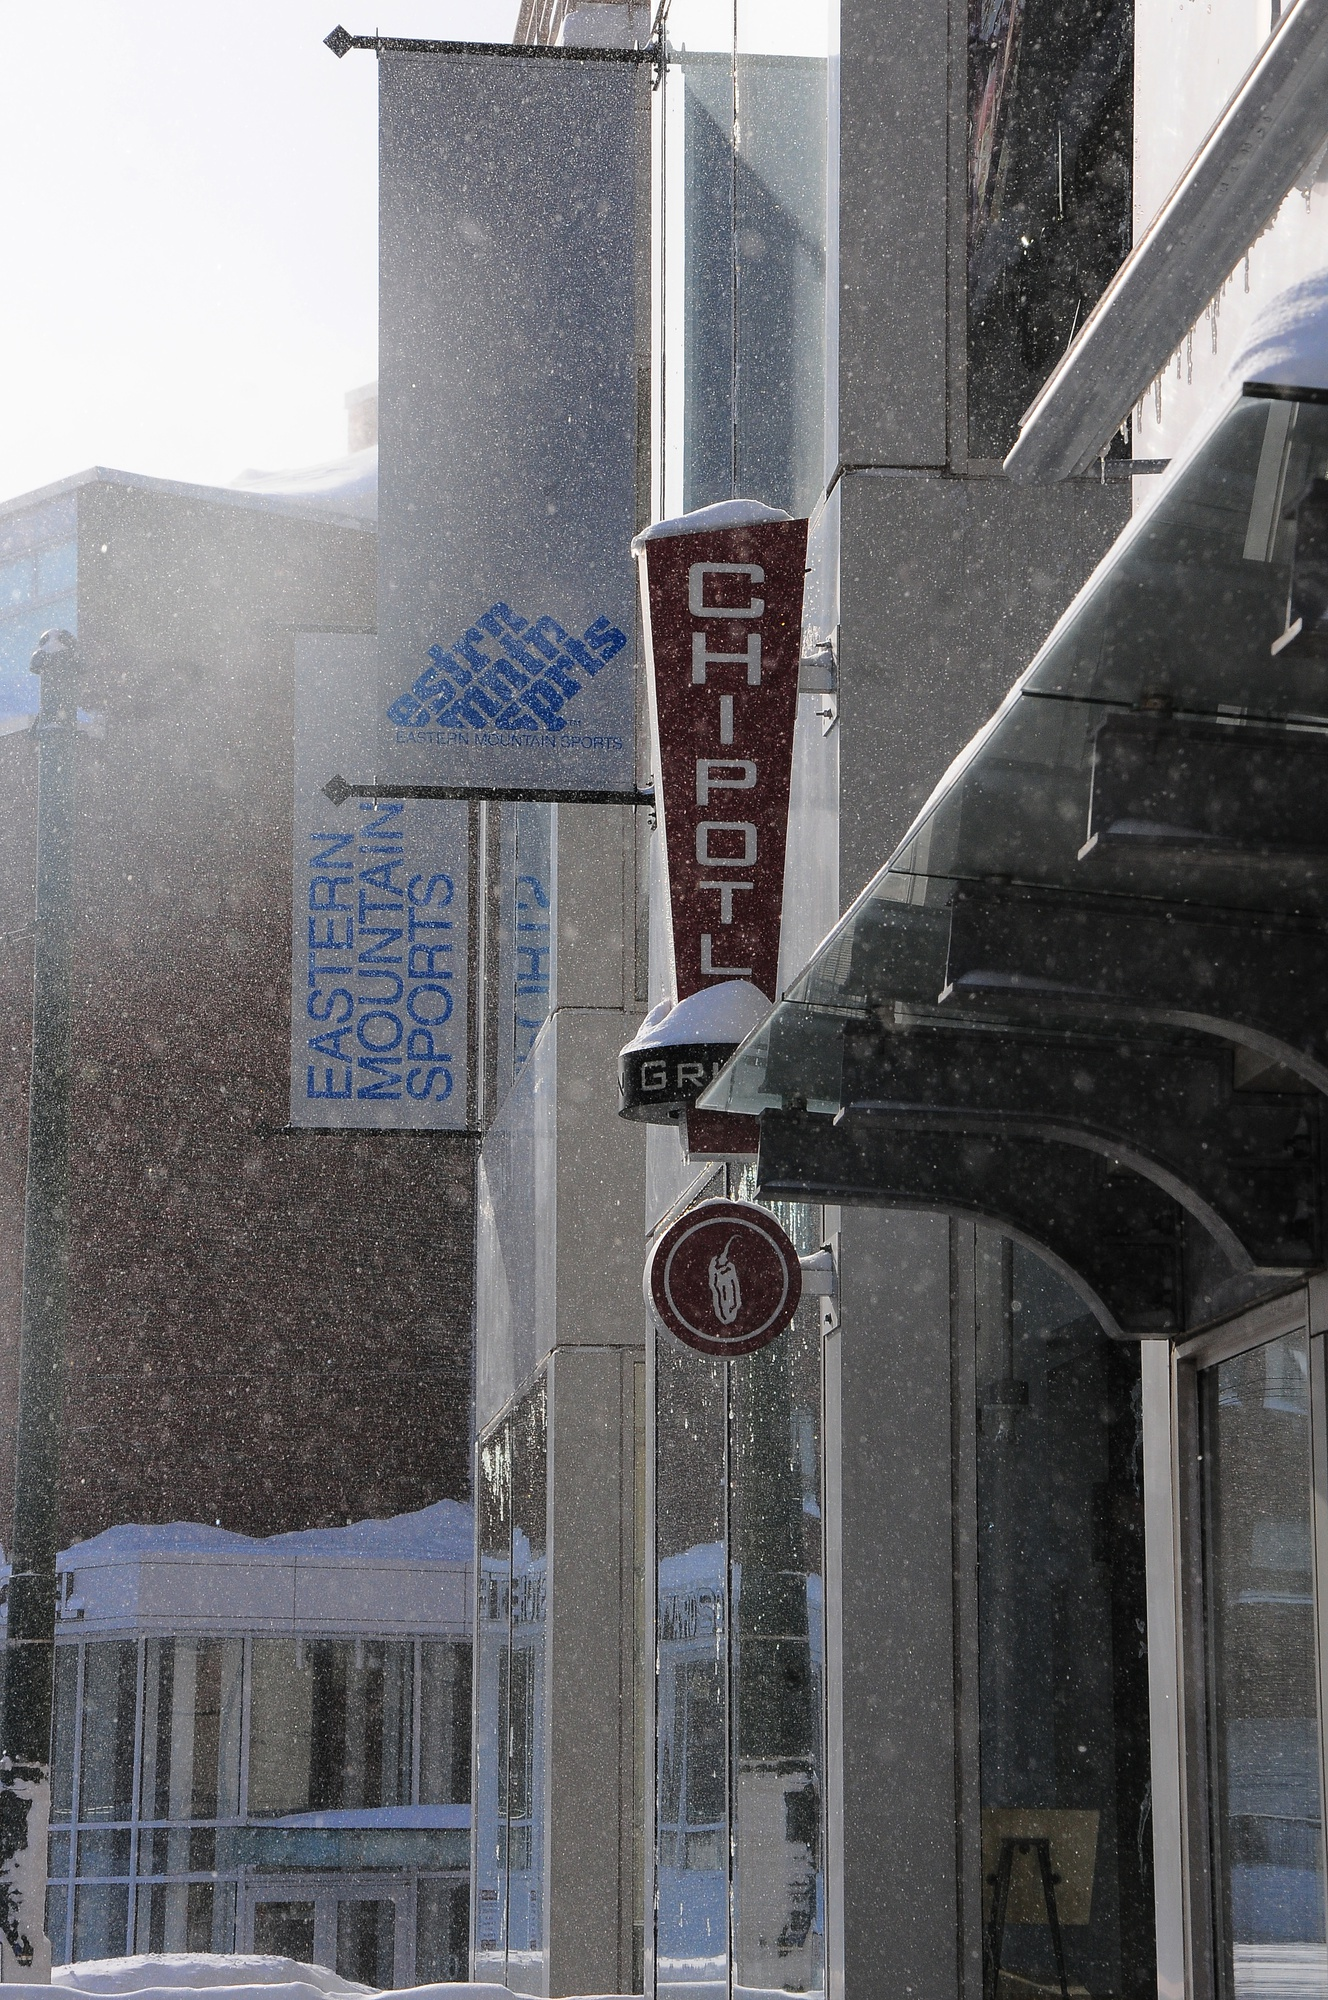 Chipotle withstands even the toughest of winter conditions to provide the joy of burritos to customers. Chipotle, a nationwide chain of Mexican food restaurants, is known for its famous burritos and stands at a convenient  location in the Square.